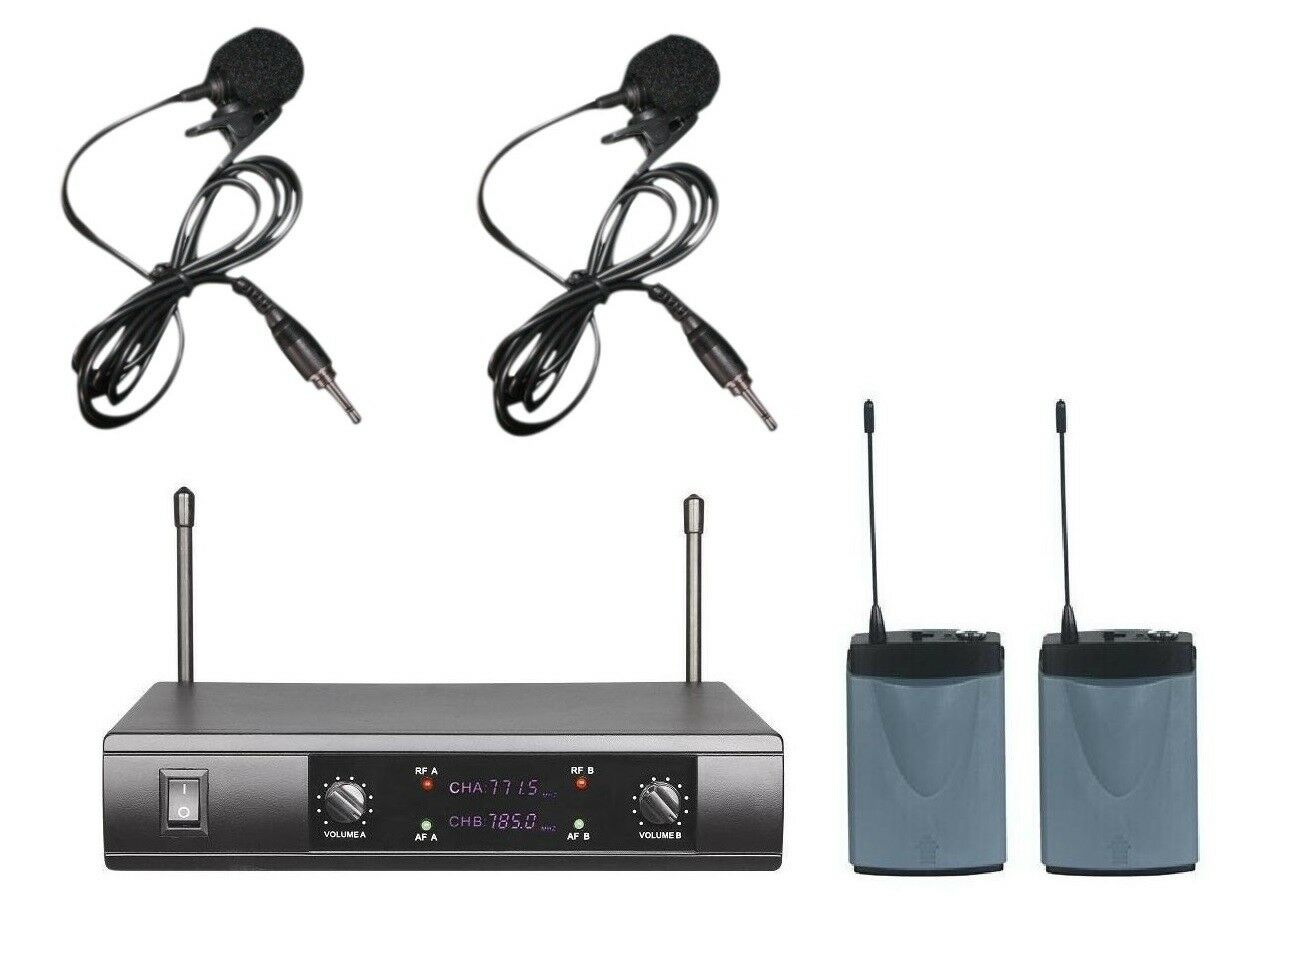 UHF Collar Mic Wireless Microphone System Receiver 2 Lapel Microphone Cordless